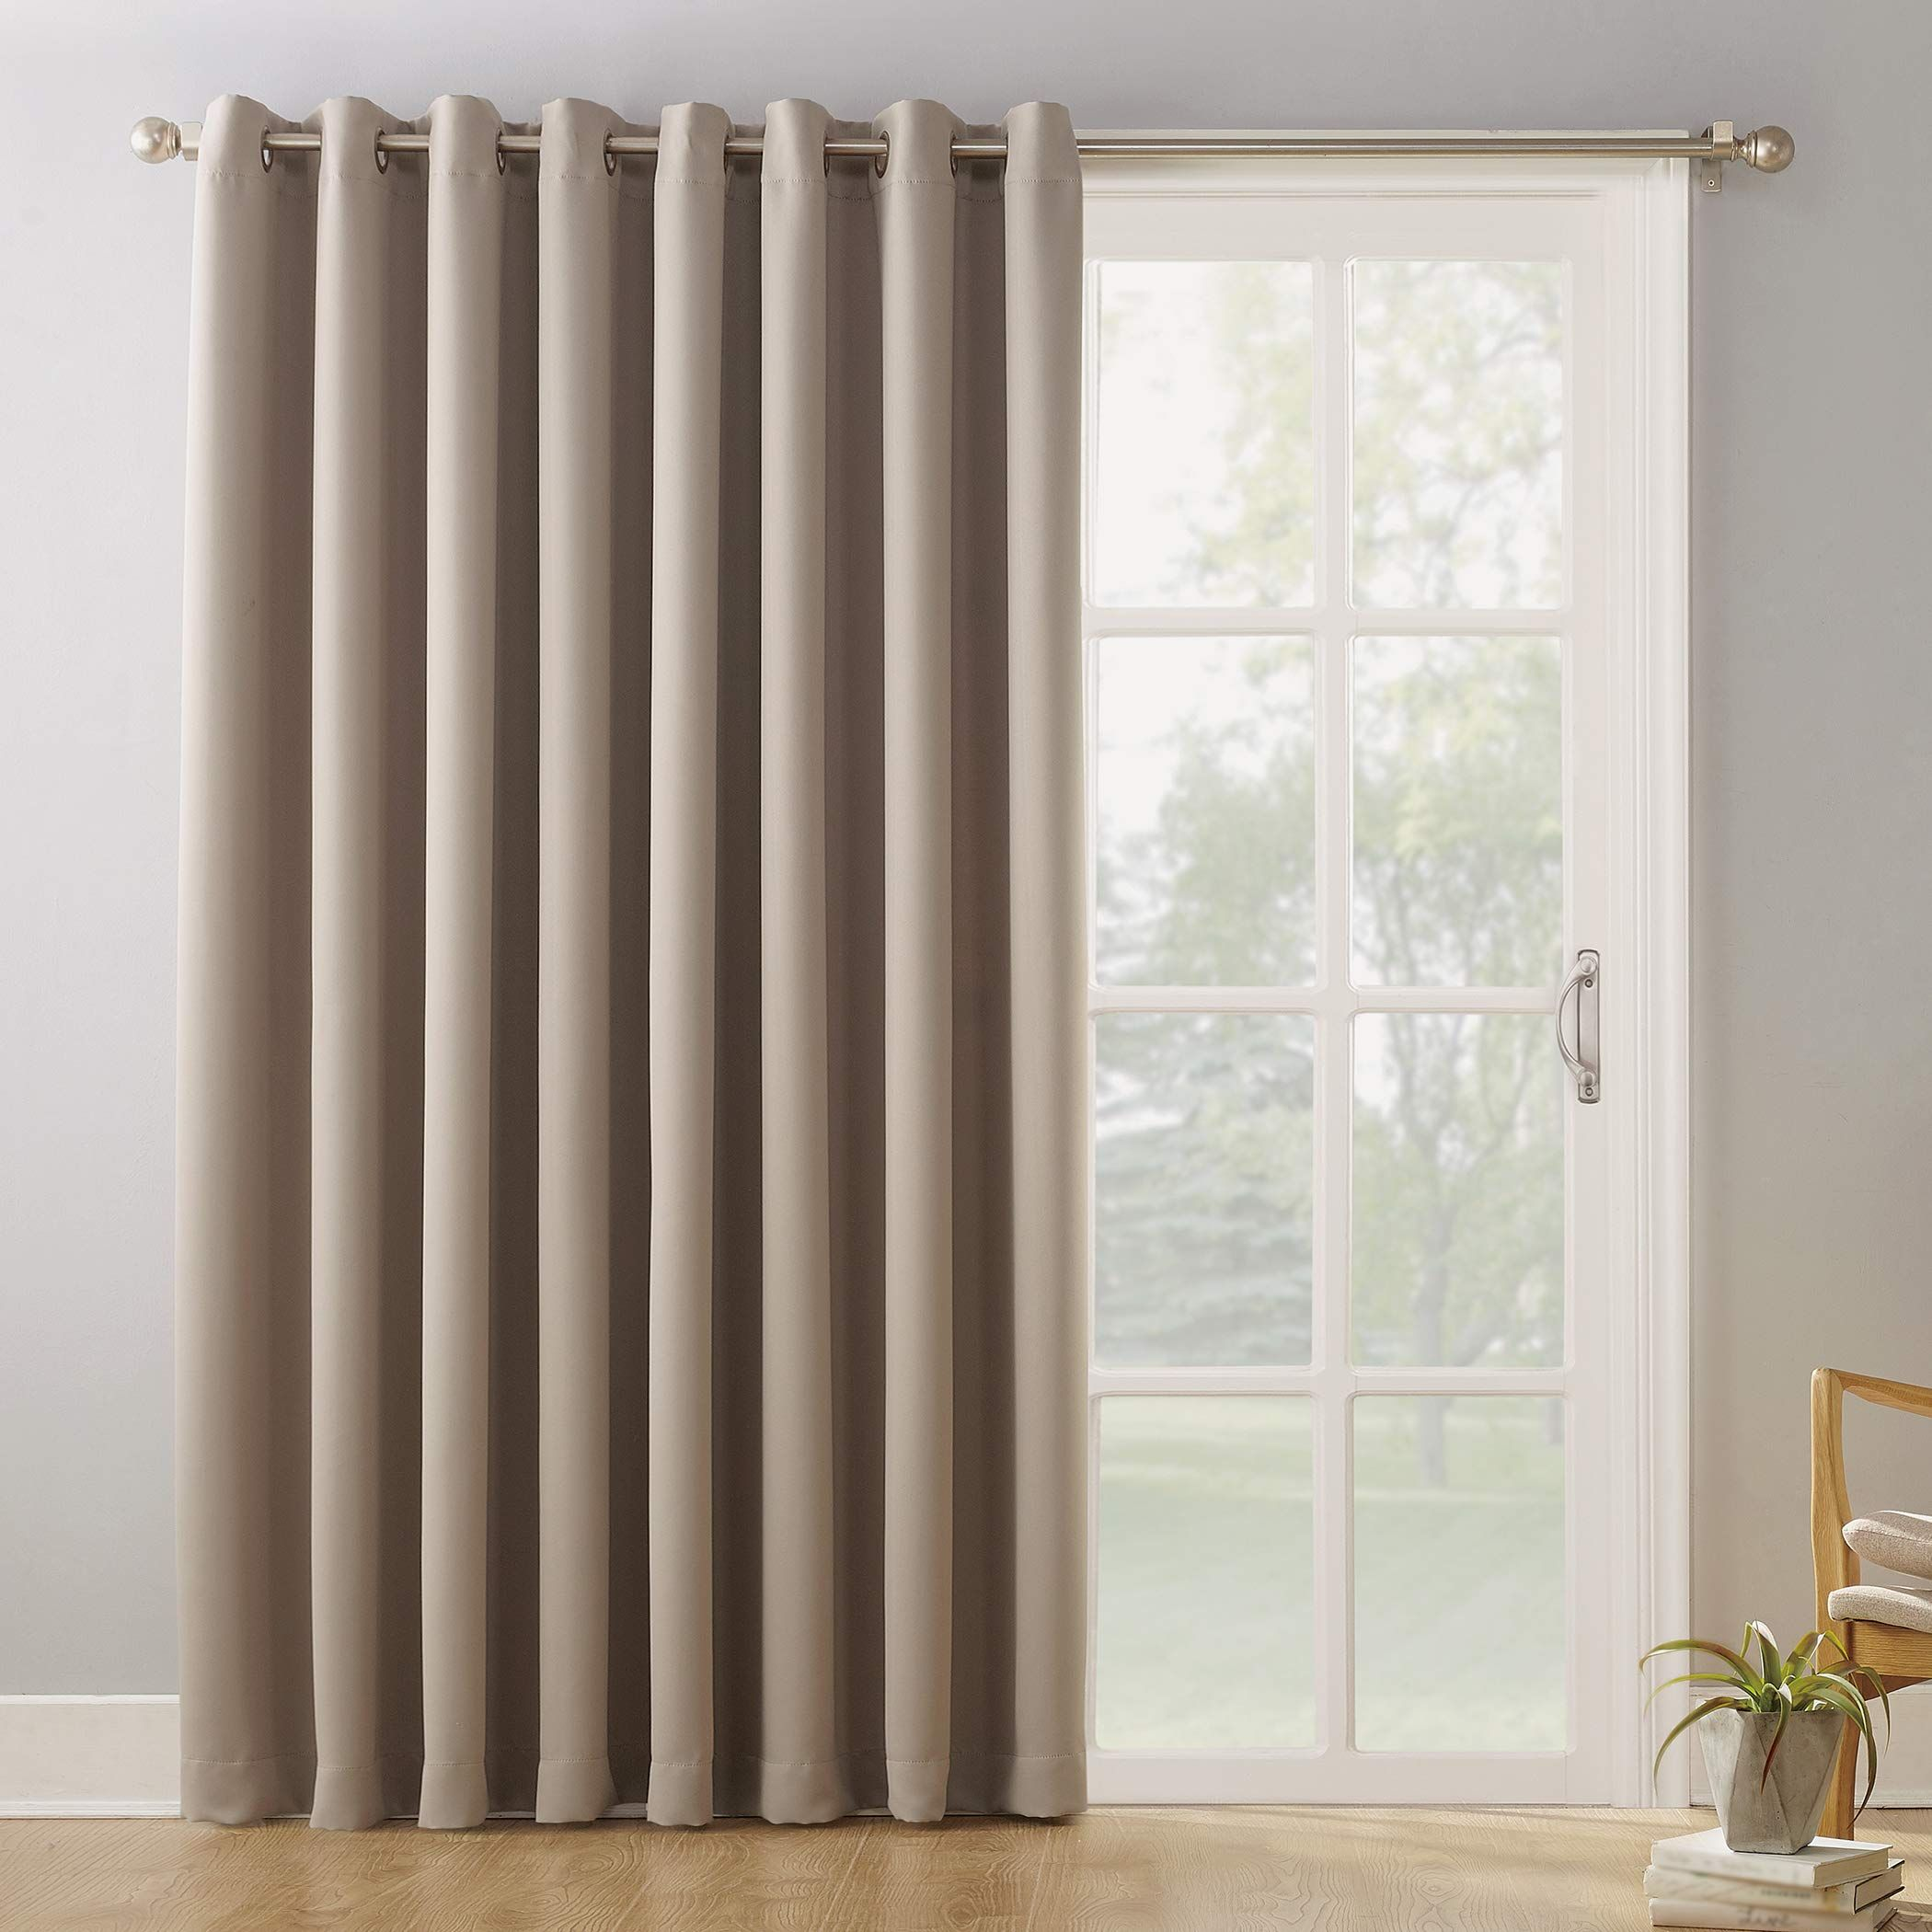 Joy2016 Blackout Curtains For Patio Sliding Door Extra Wide Draperies For Double Window Thermal Insulated Energy Effi In 2020 Curtains Curtains Dunelm Patio Curtains